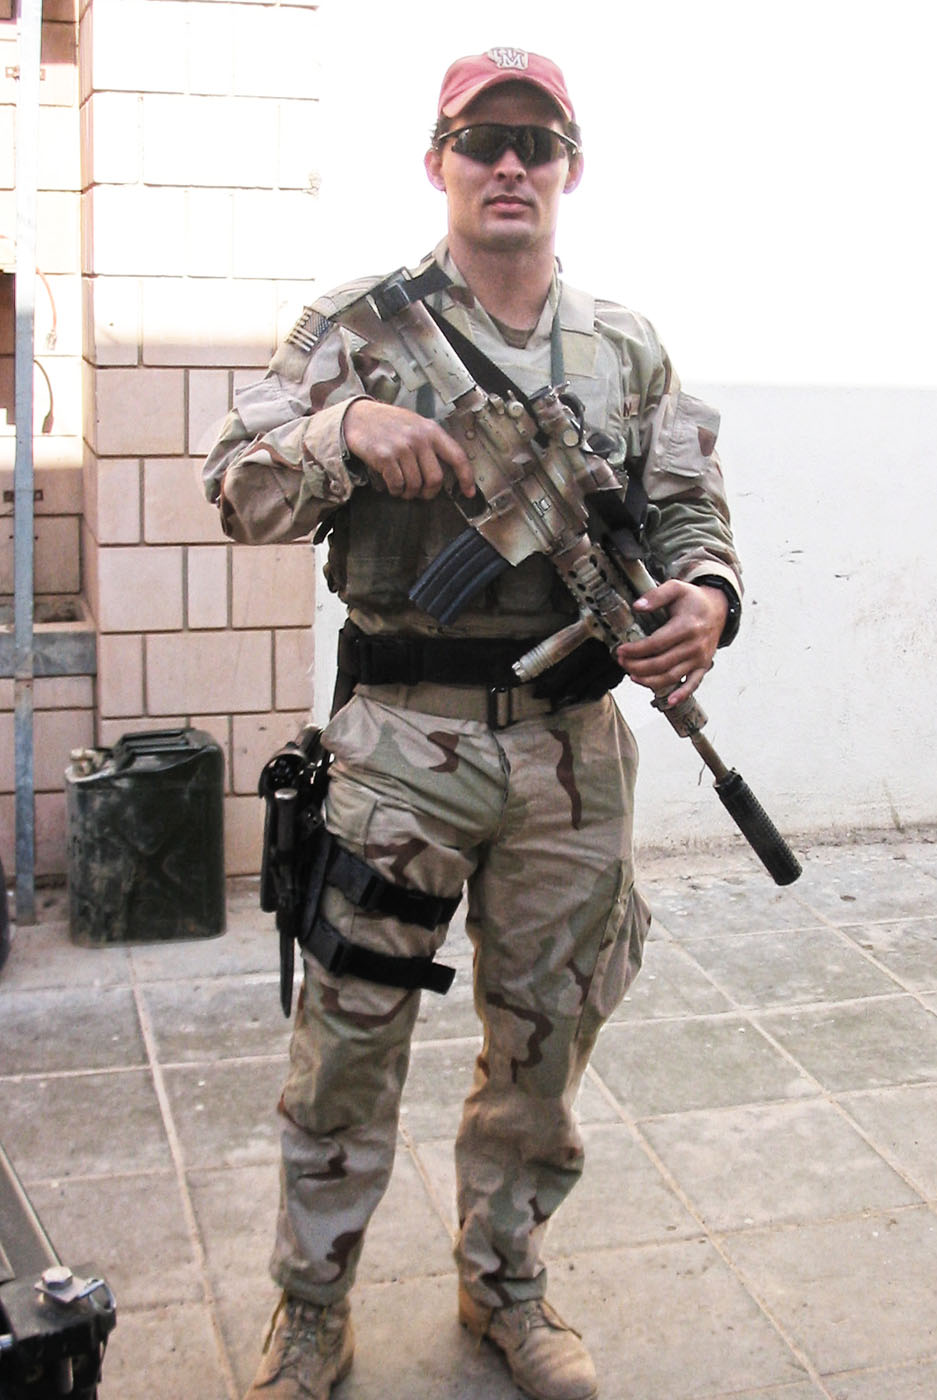 U.S. Army Staff Sergeant Aaron N. Holleyman, 27, of Glasgow, Montana, assigned to the 1st Battalion, 5th Special Forces Group, based in Fort Campbell, Kentucky, was killed on August 30, 2004, when his military vehicle hit an improvised explosive device in Khutayiah, Iraq. He is survived by his daughters Shelby and Erin, son Zachary, parents Ross and Glenda, and siblings Kelly and Daniel.